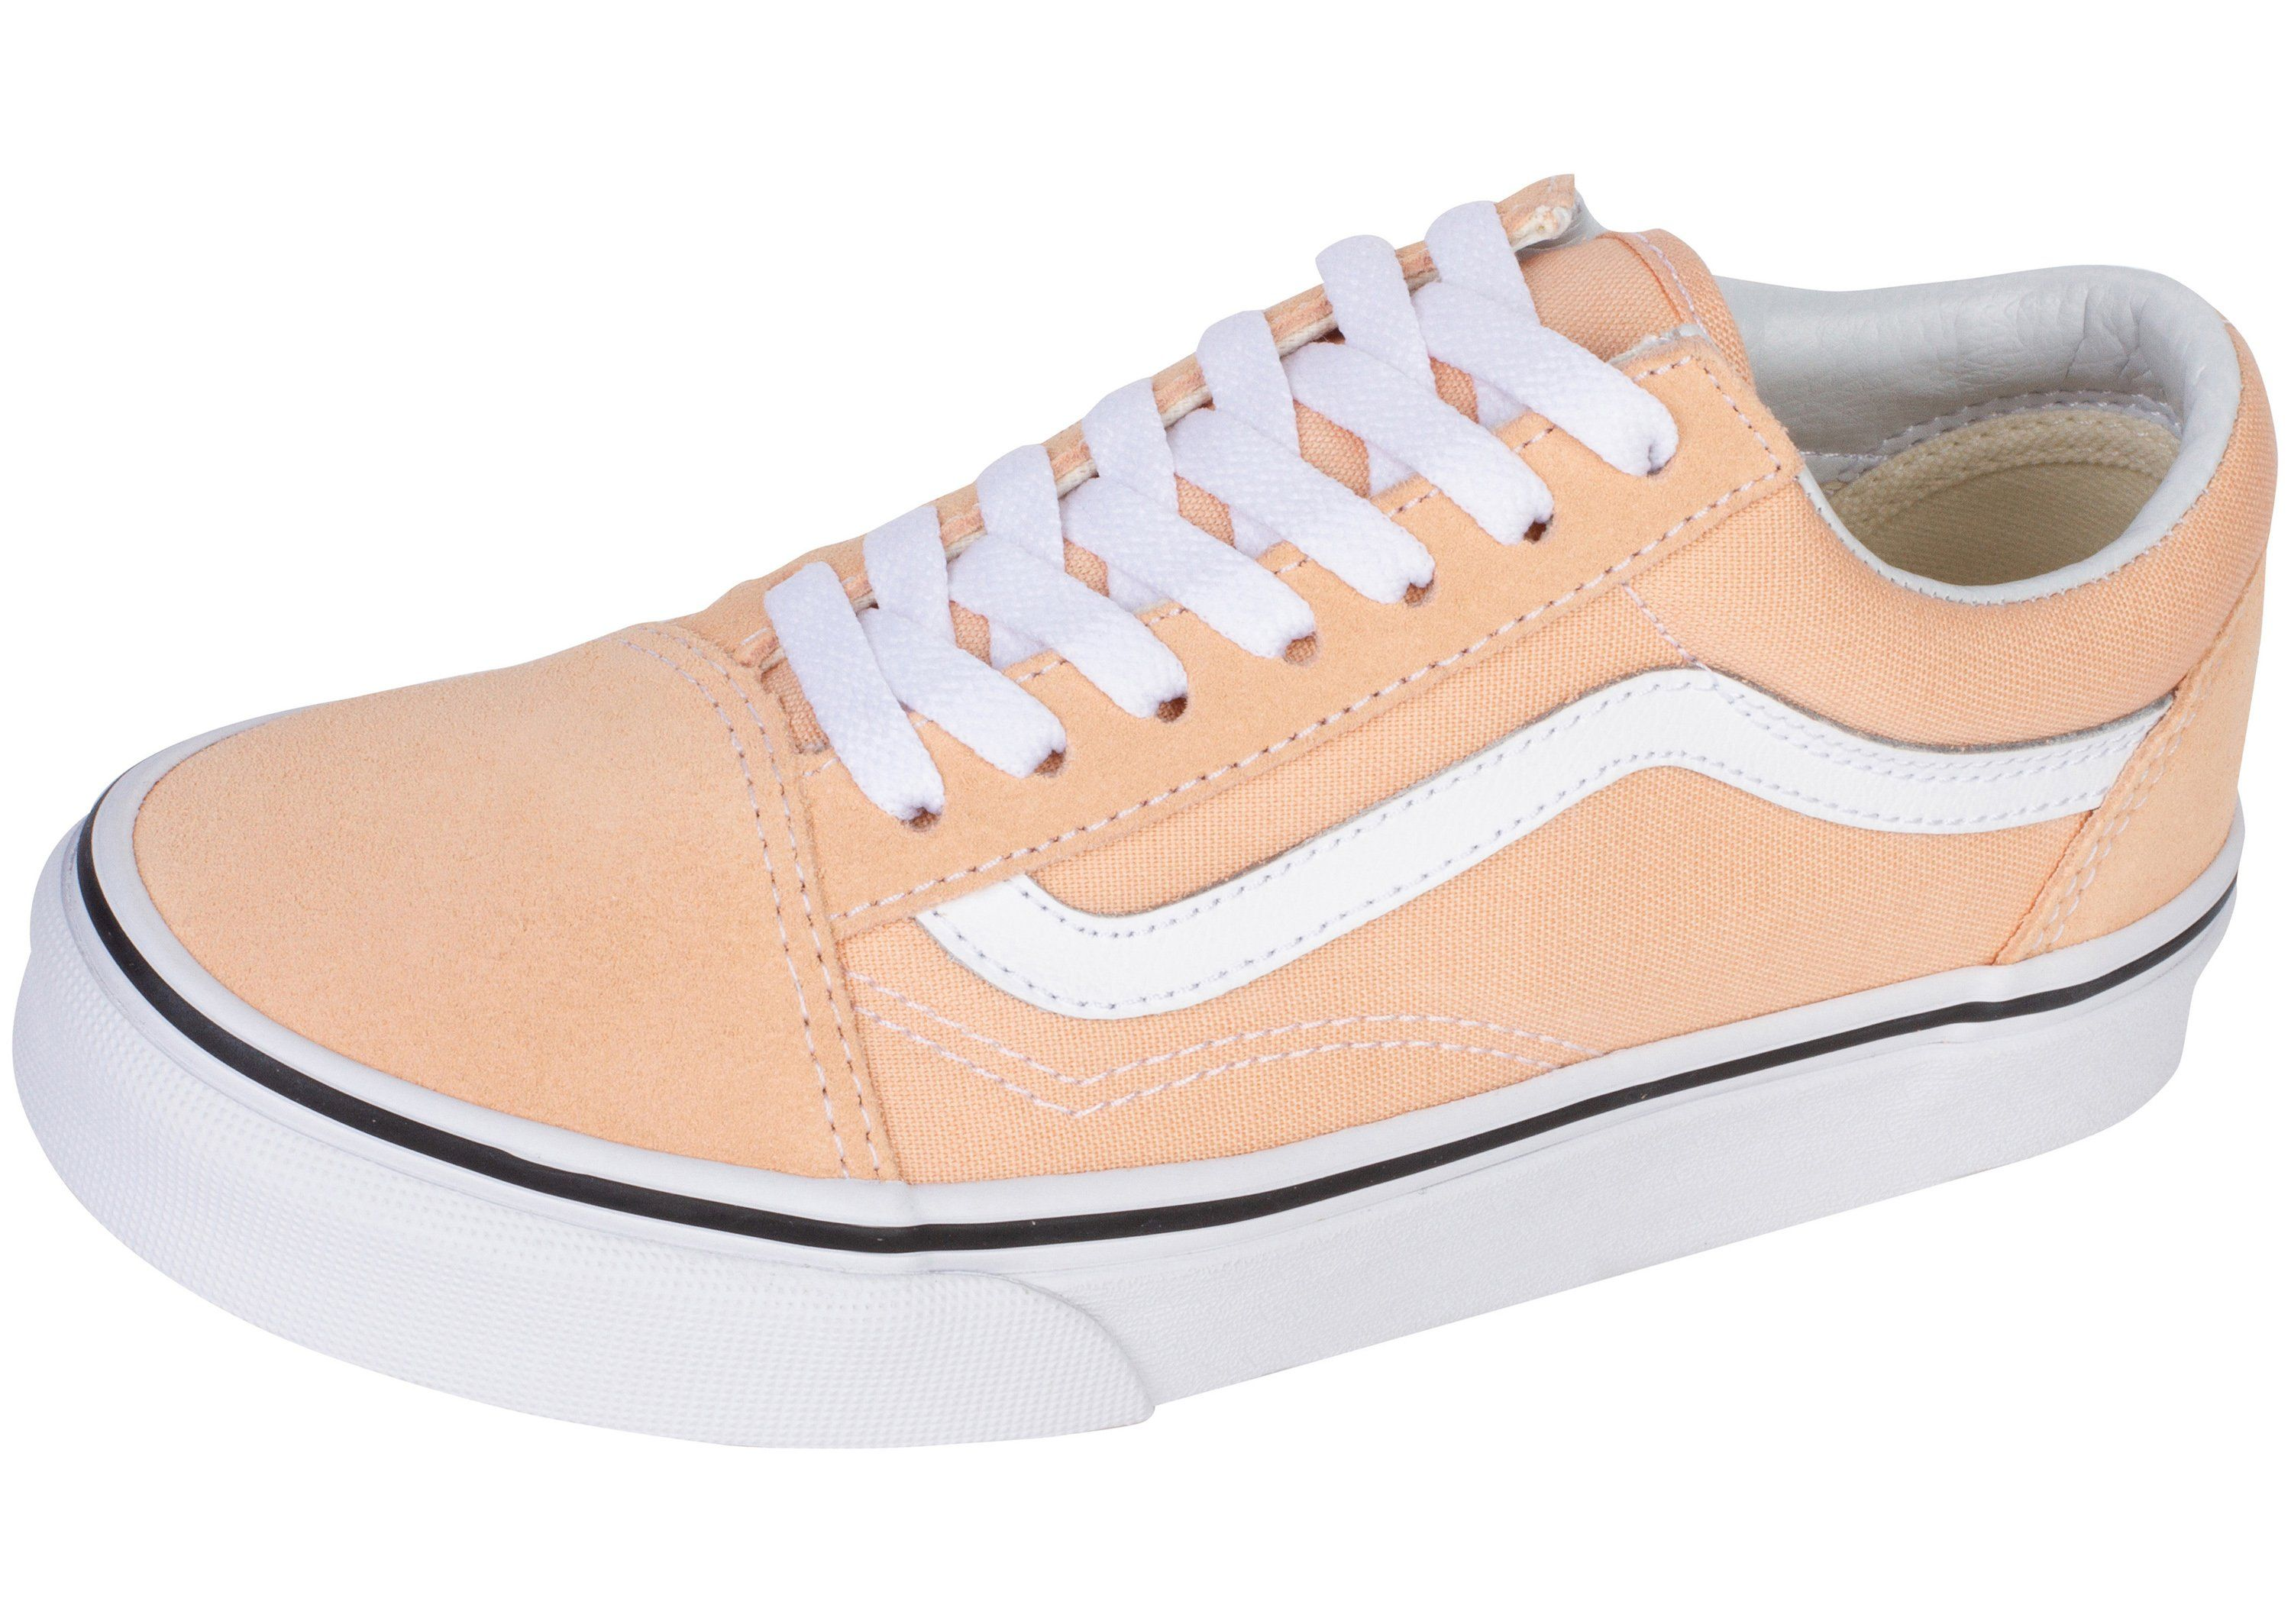 38e3a440 Vans Old Skool Bleached Apricot True White | Style in 2019 | Vans ...